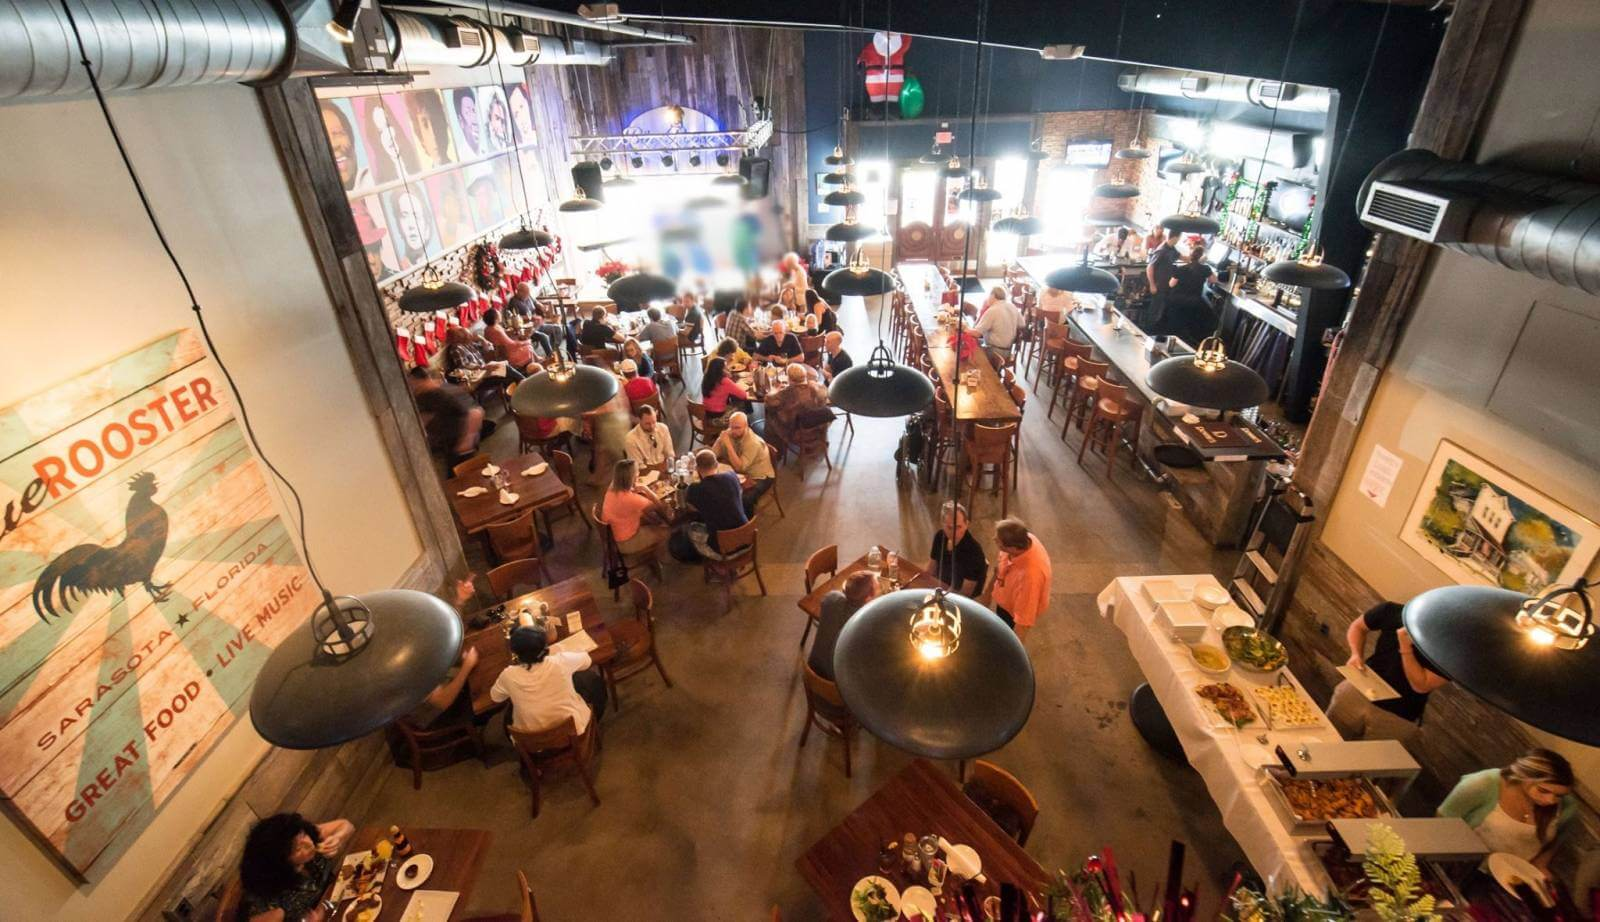 View of the dining room at The Blue Rooster bar and restaurant downtown Sarasota, Florida.